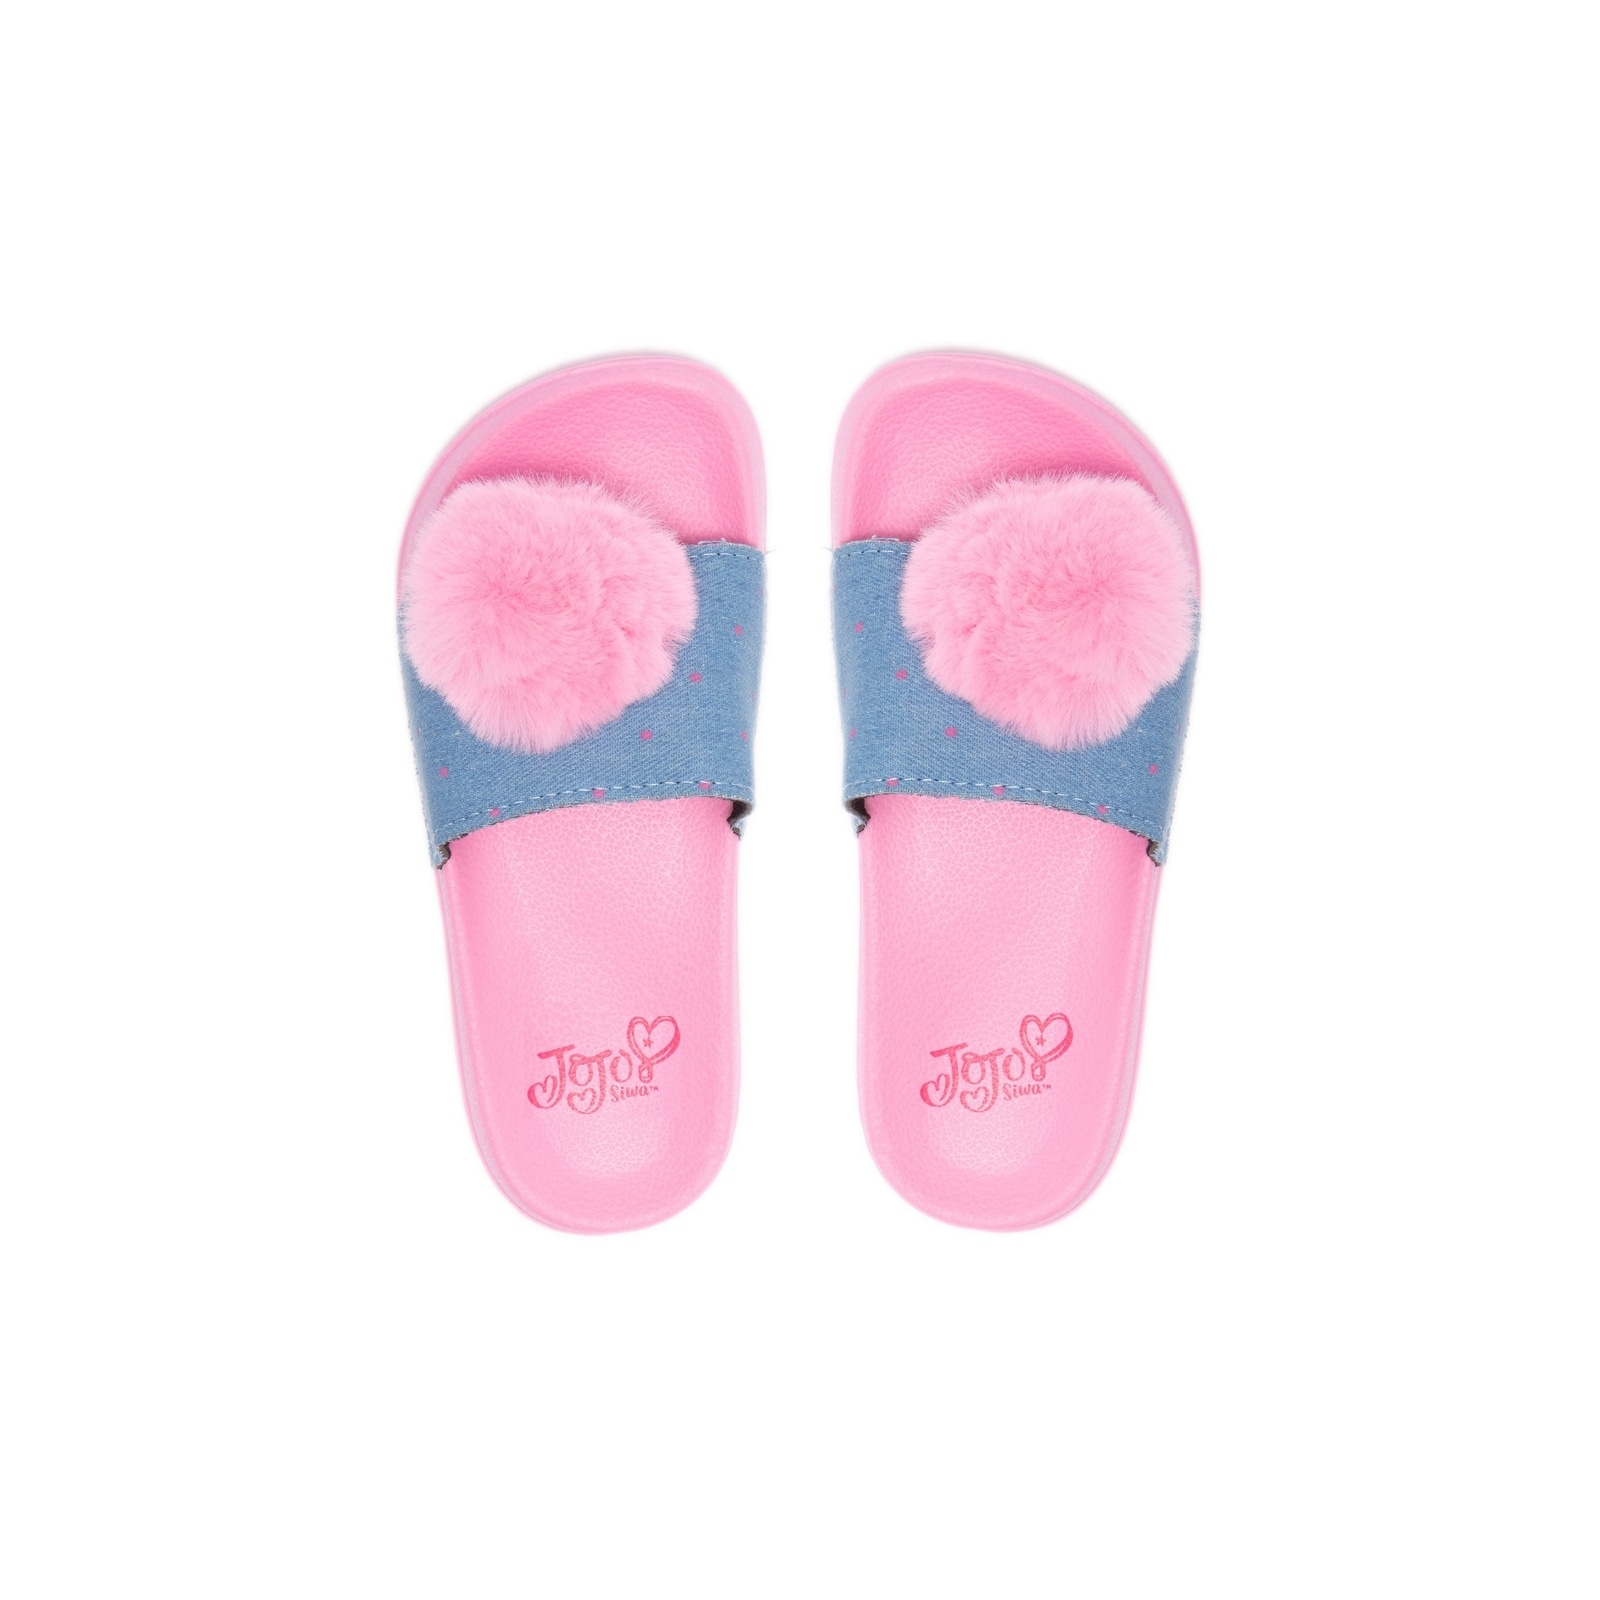 38efdecd363e Shop Girls Slip On Sandals - Jojo Siwa